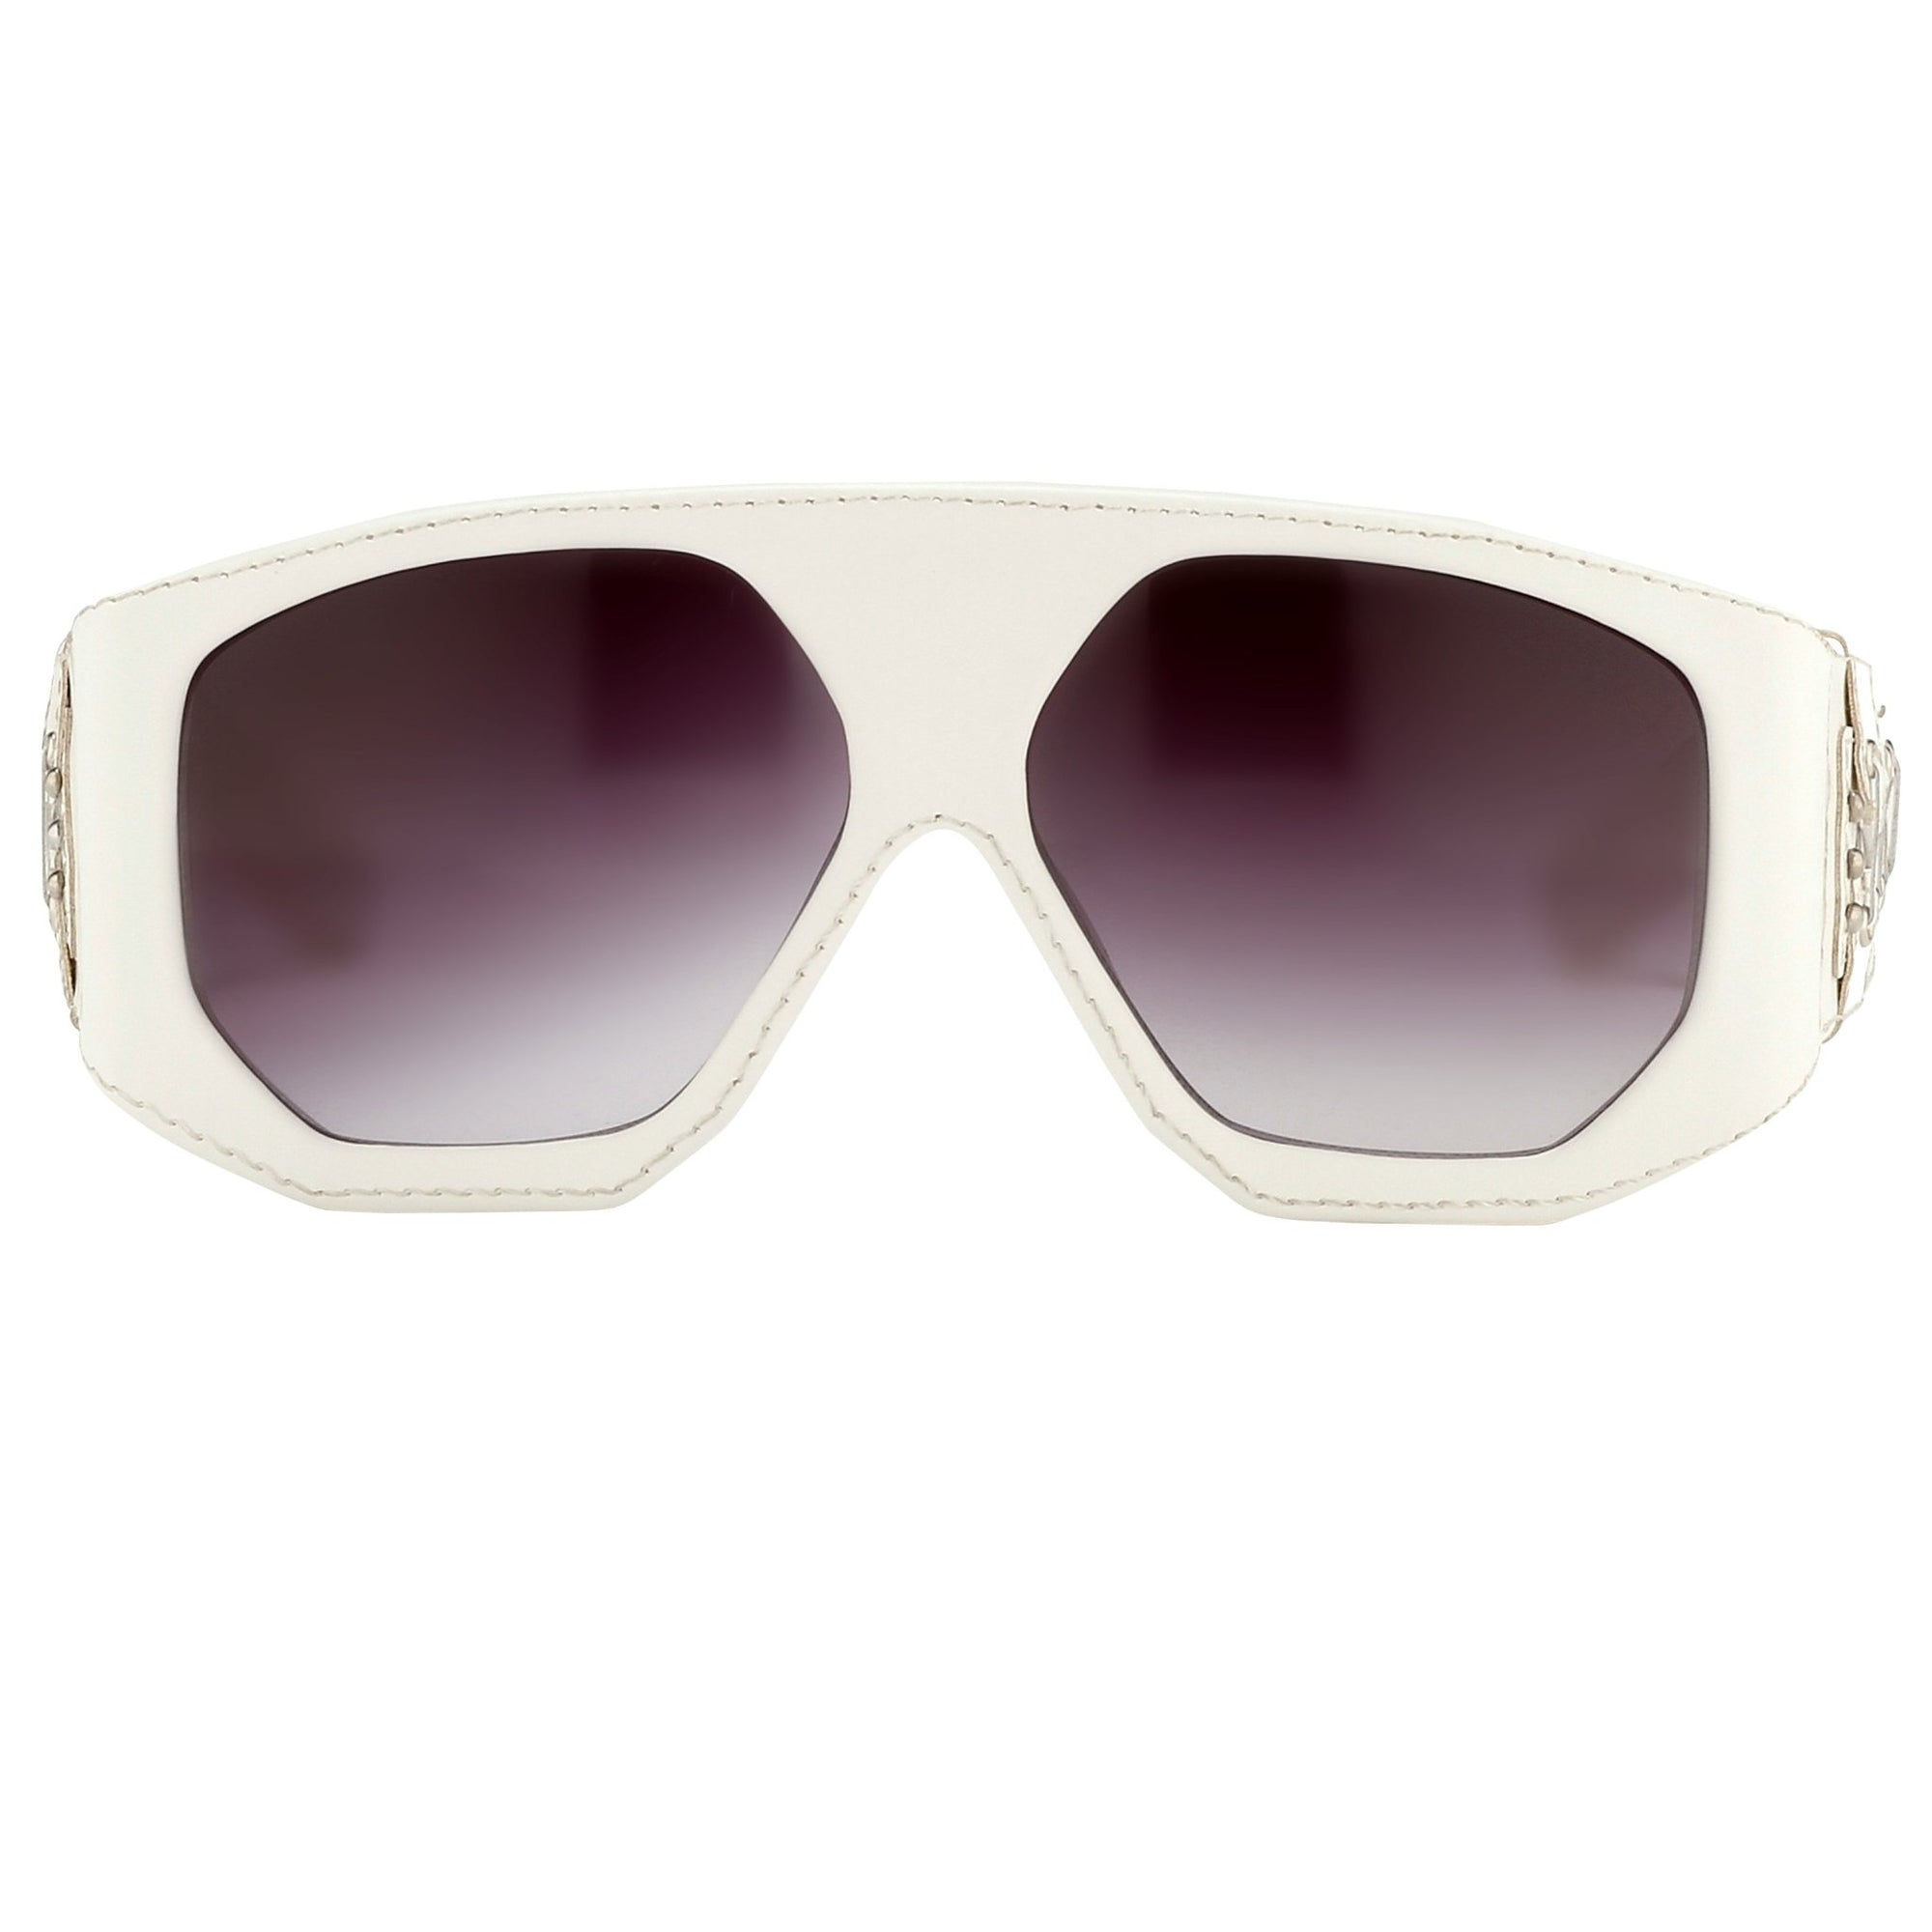 Jeremy Scott Sunglasses D-Frame Leather Lace White With Grey Gradient Category 3 Lenses JSLEATHERC2SUN - Watches & Crystals